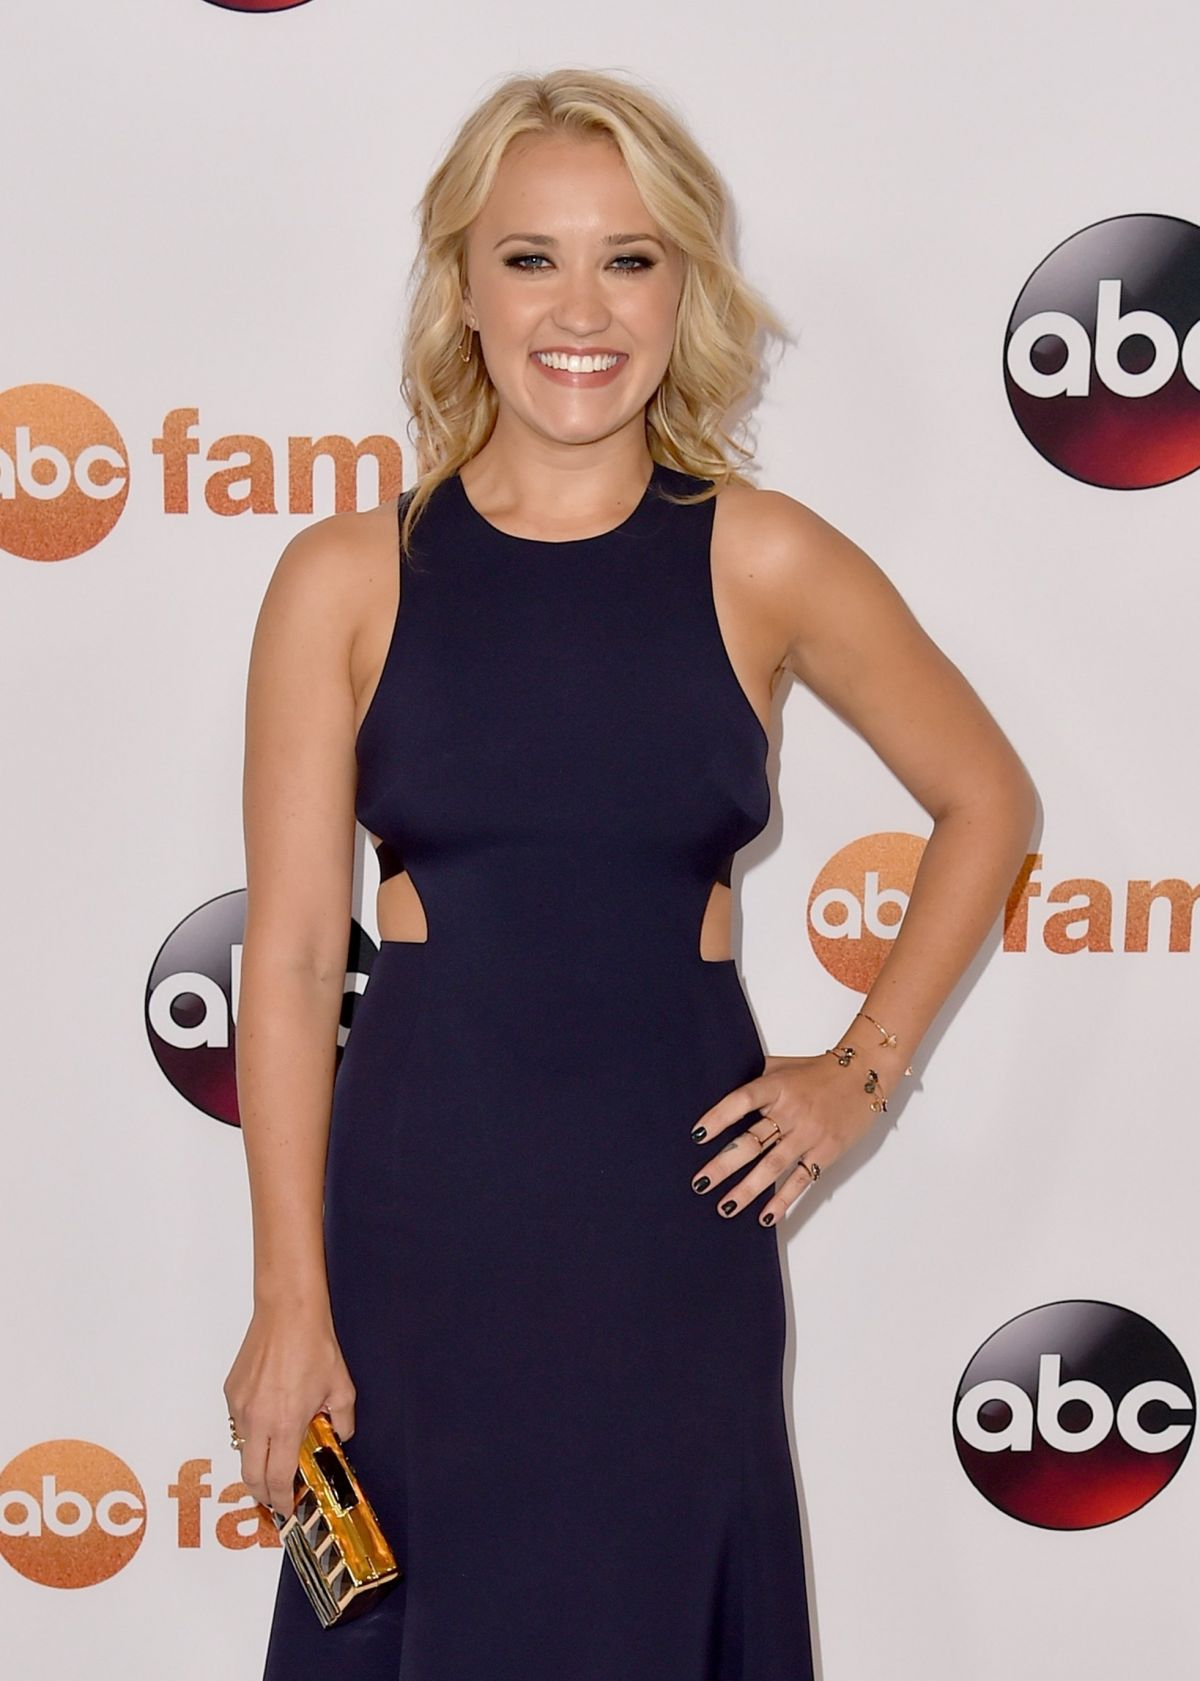 EMILY OSMENT at Disney ABC 2015 Summer TCA Tour in Beverly Hills